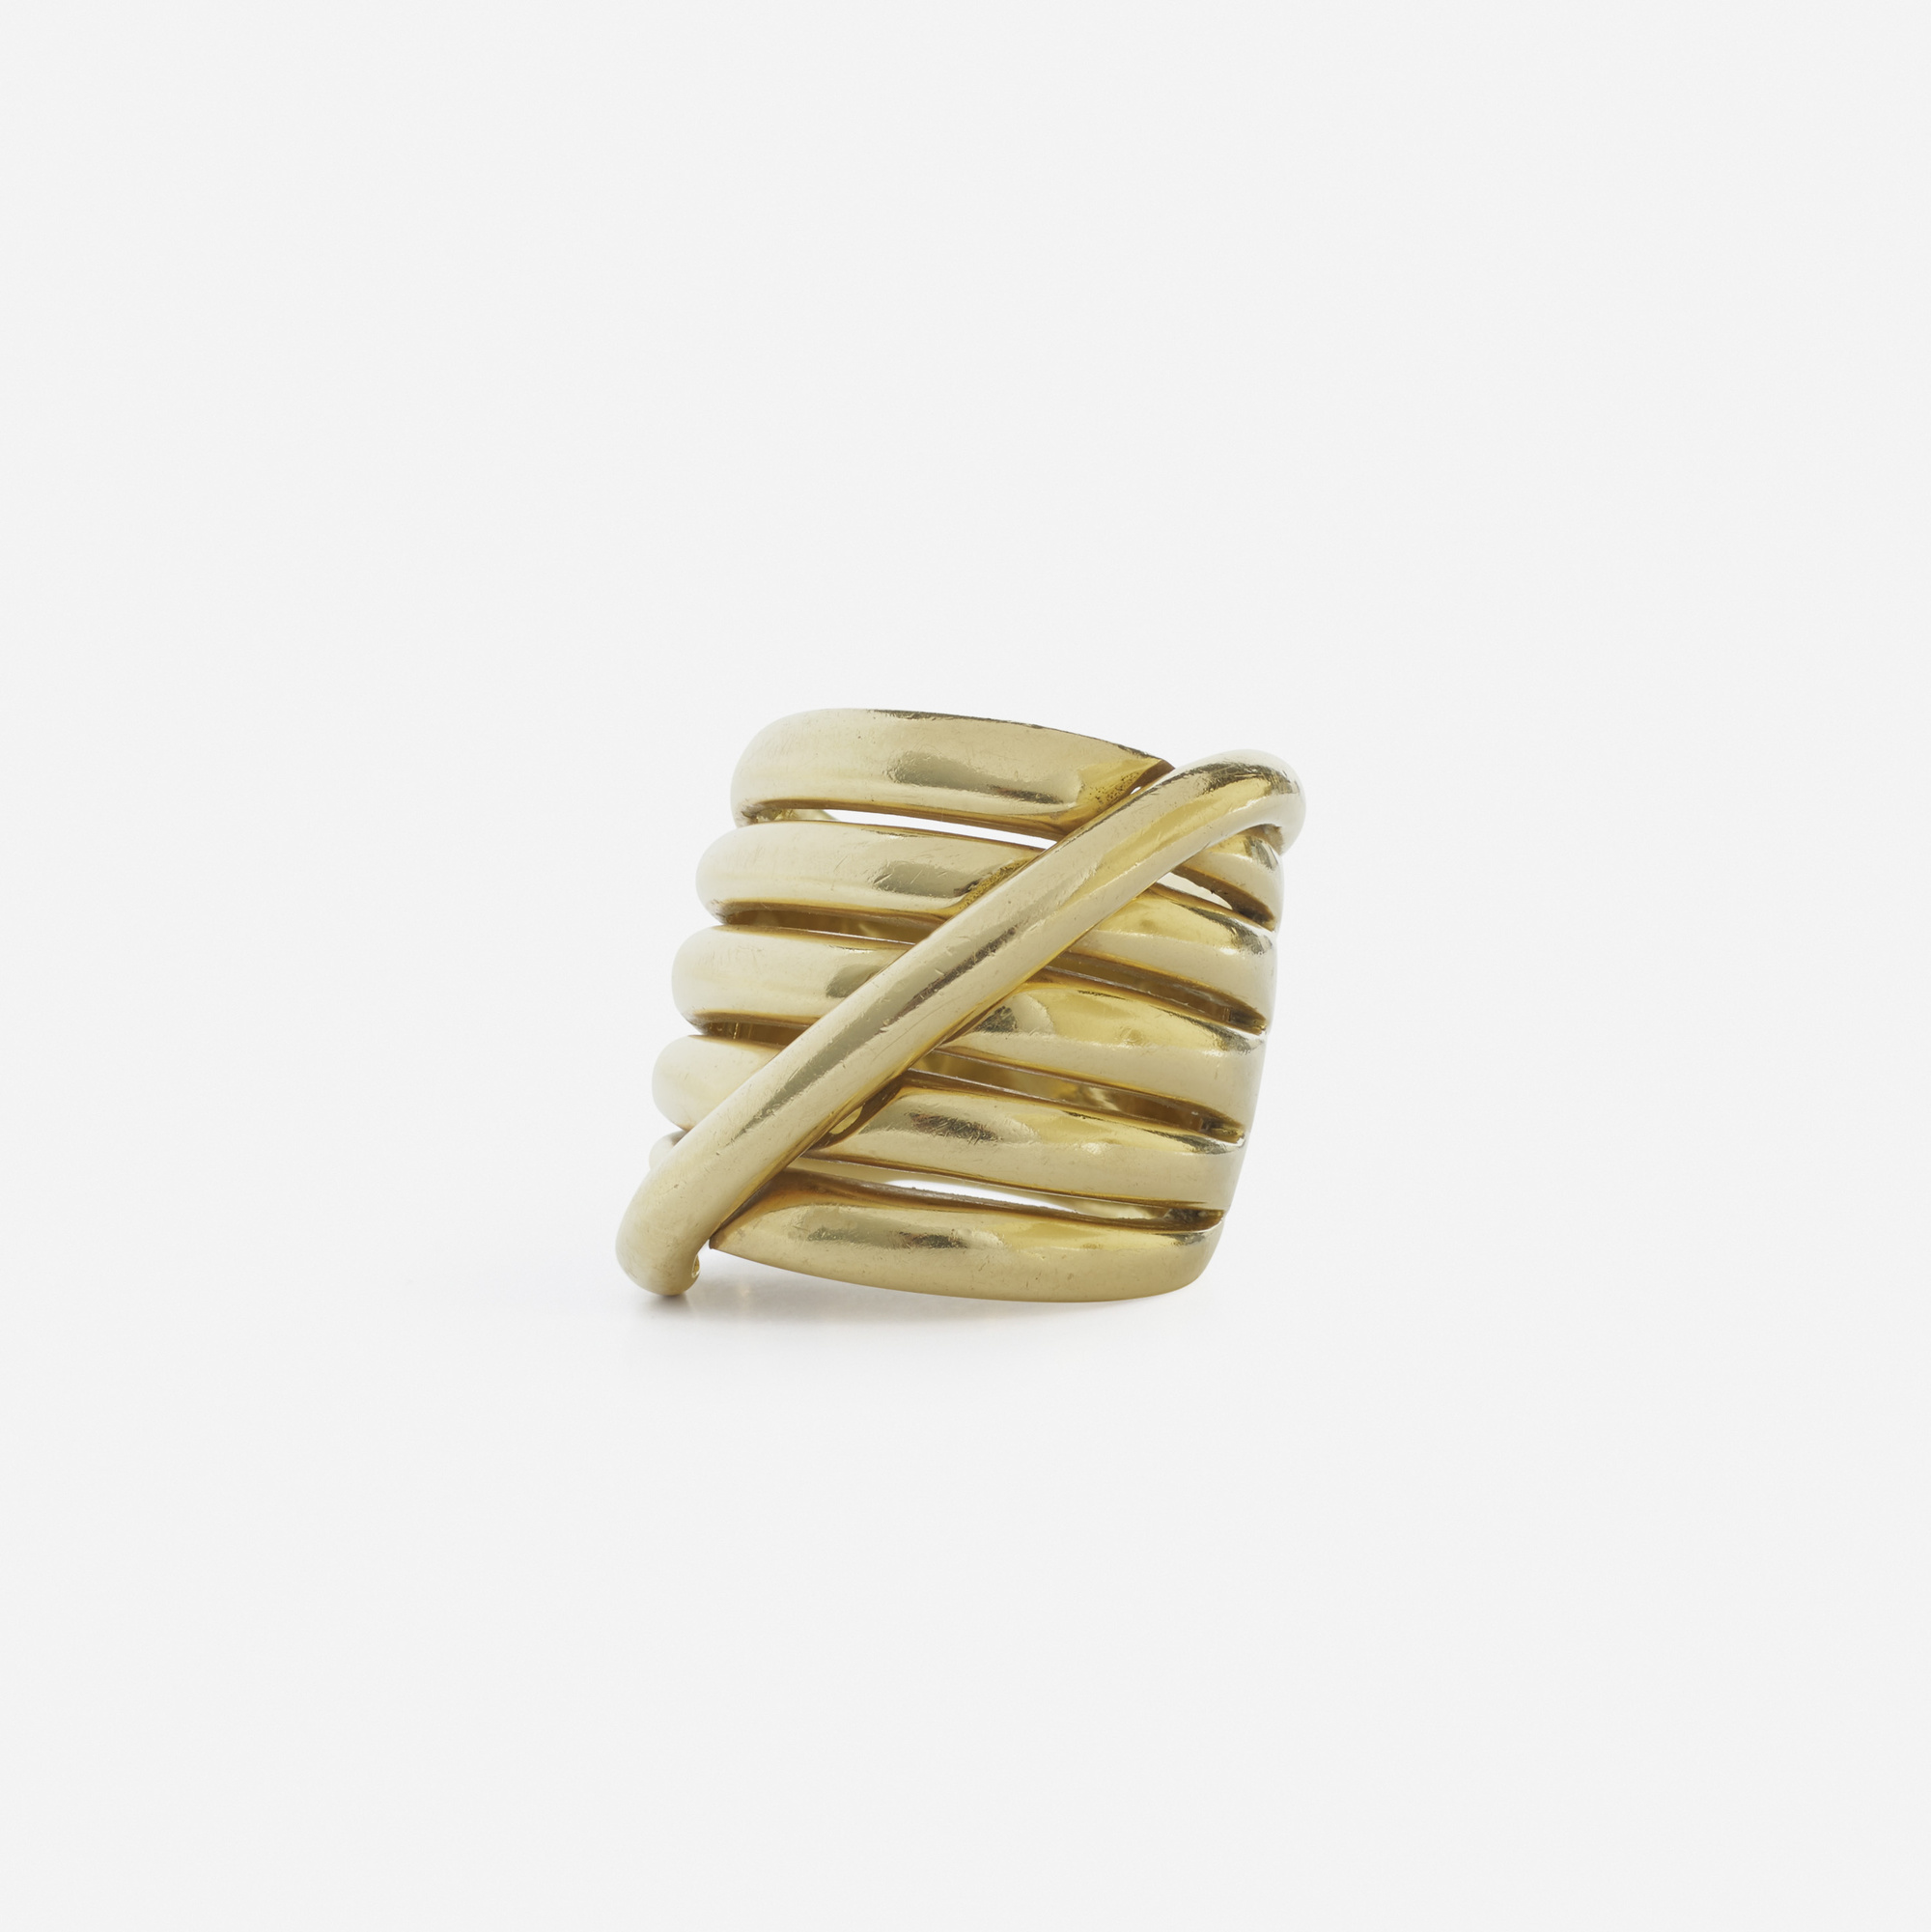 264: Gucci / A gold ring (2 of 2)